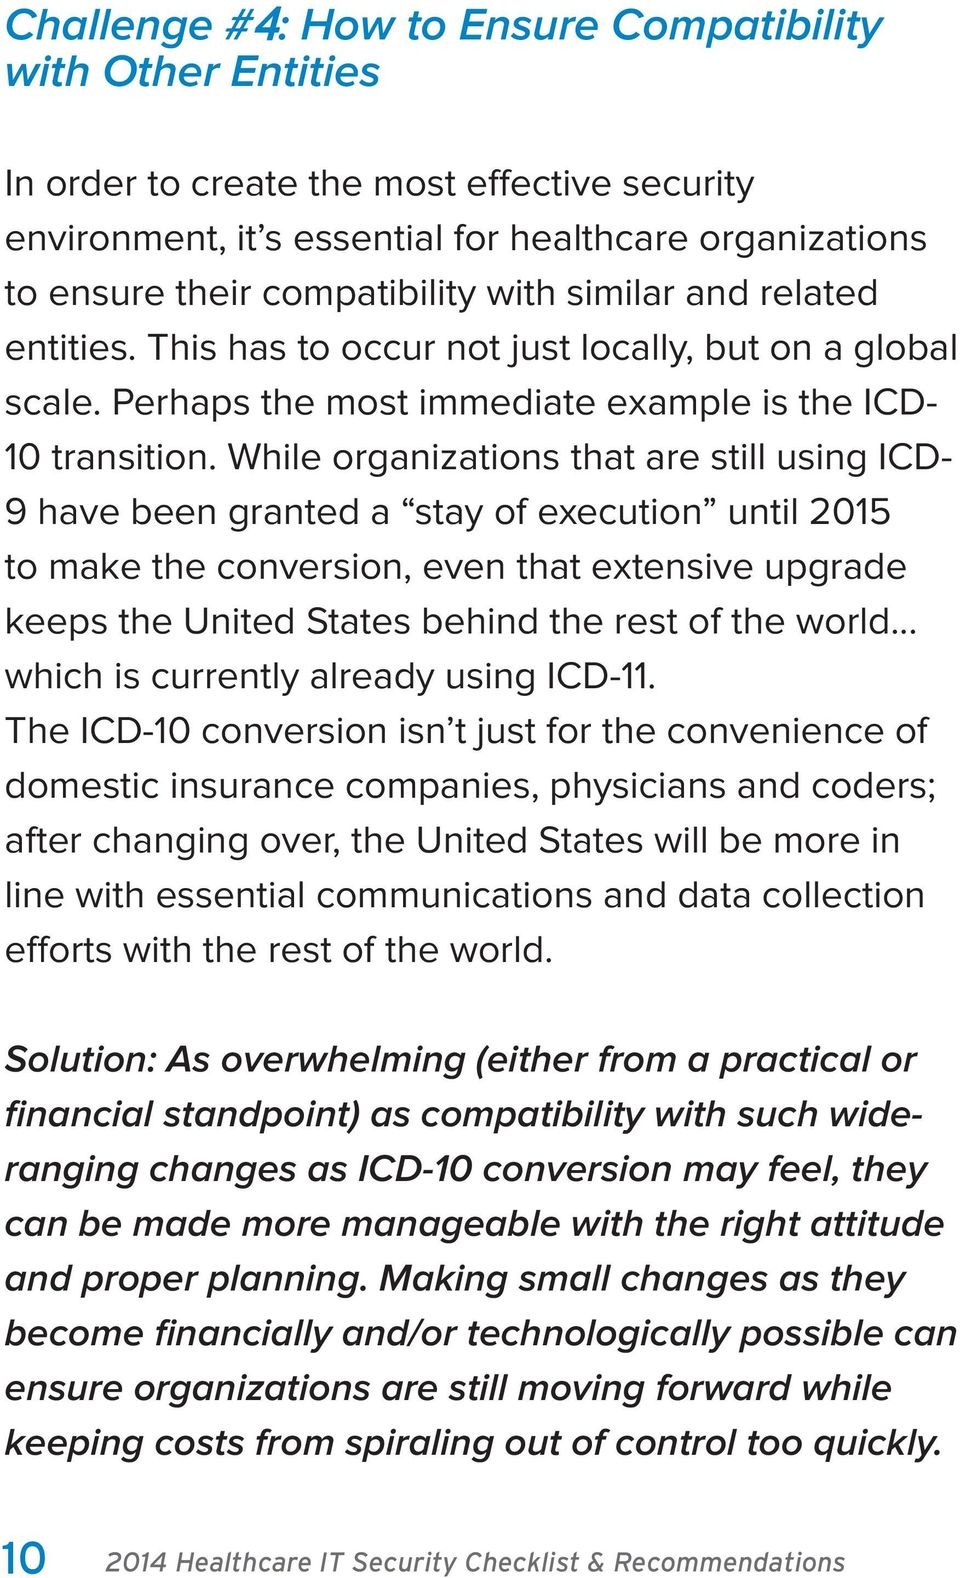 While organizations that are still using ICD- 9 have been granted a stay of execution until 2015 to make the conversion, even that extensive upgrade keeps the United States behind the rest of the